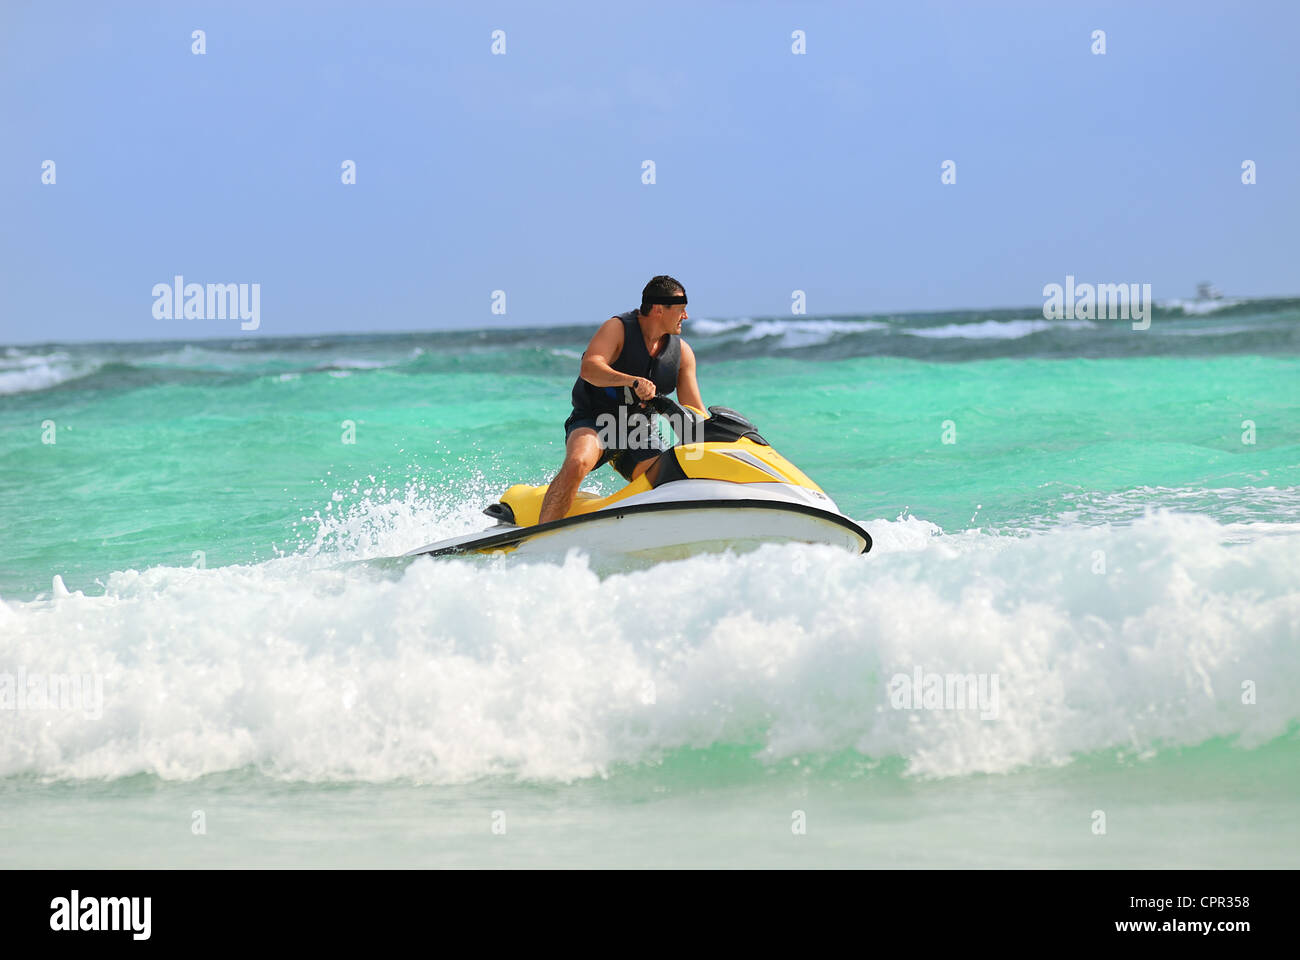 Man on Wave Runner turns fast on the water - Stock Image